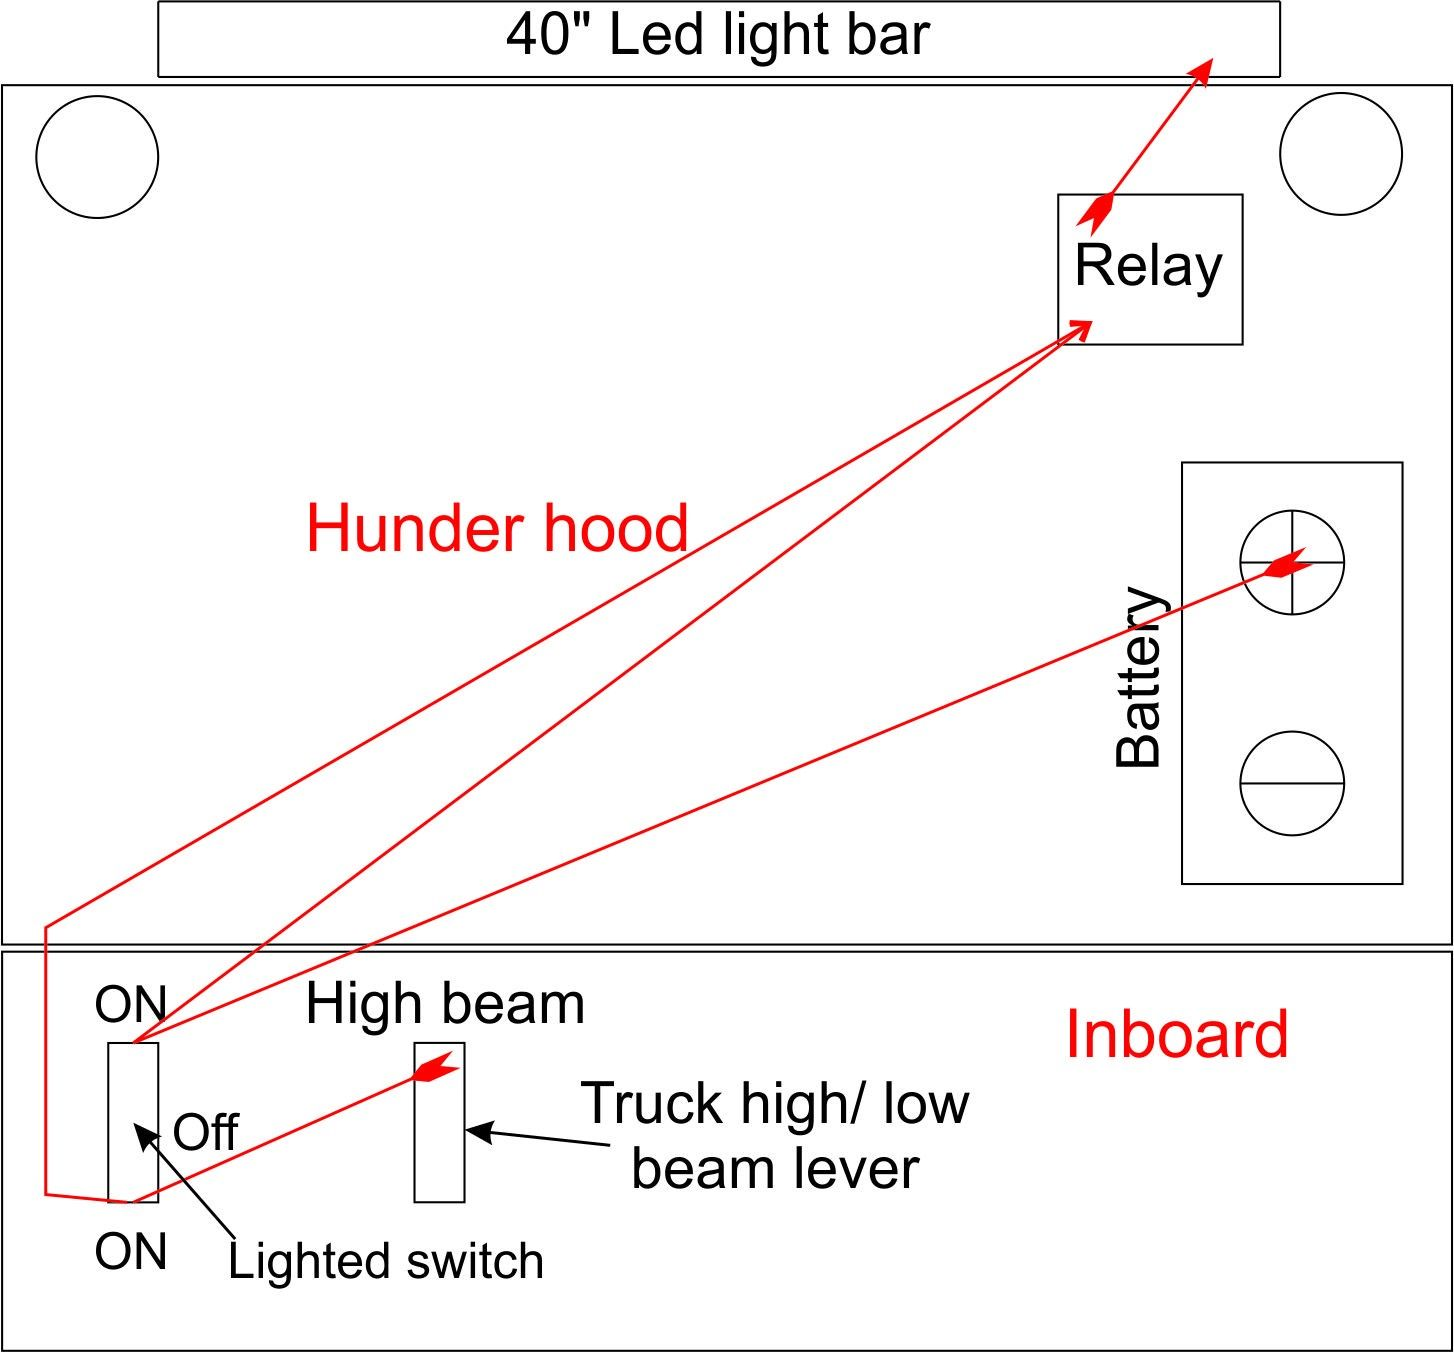 Best Of Wiring Diagram For Light Bar To High Beam  Diagrams  Digramssample  Diagramimages